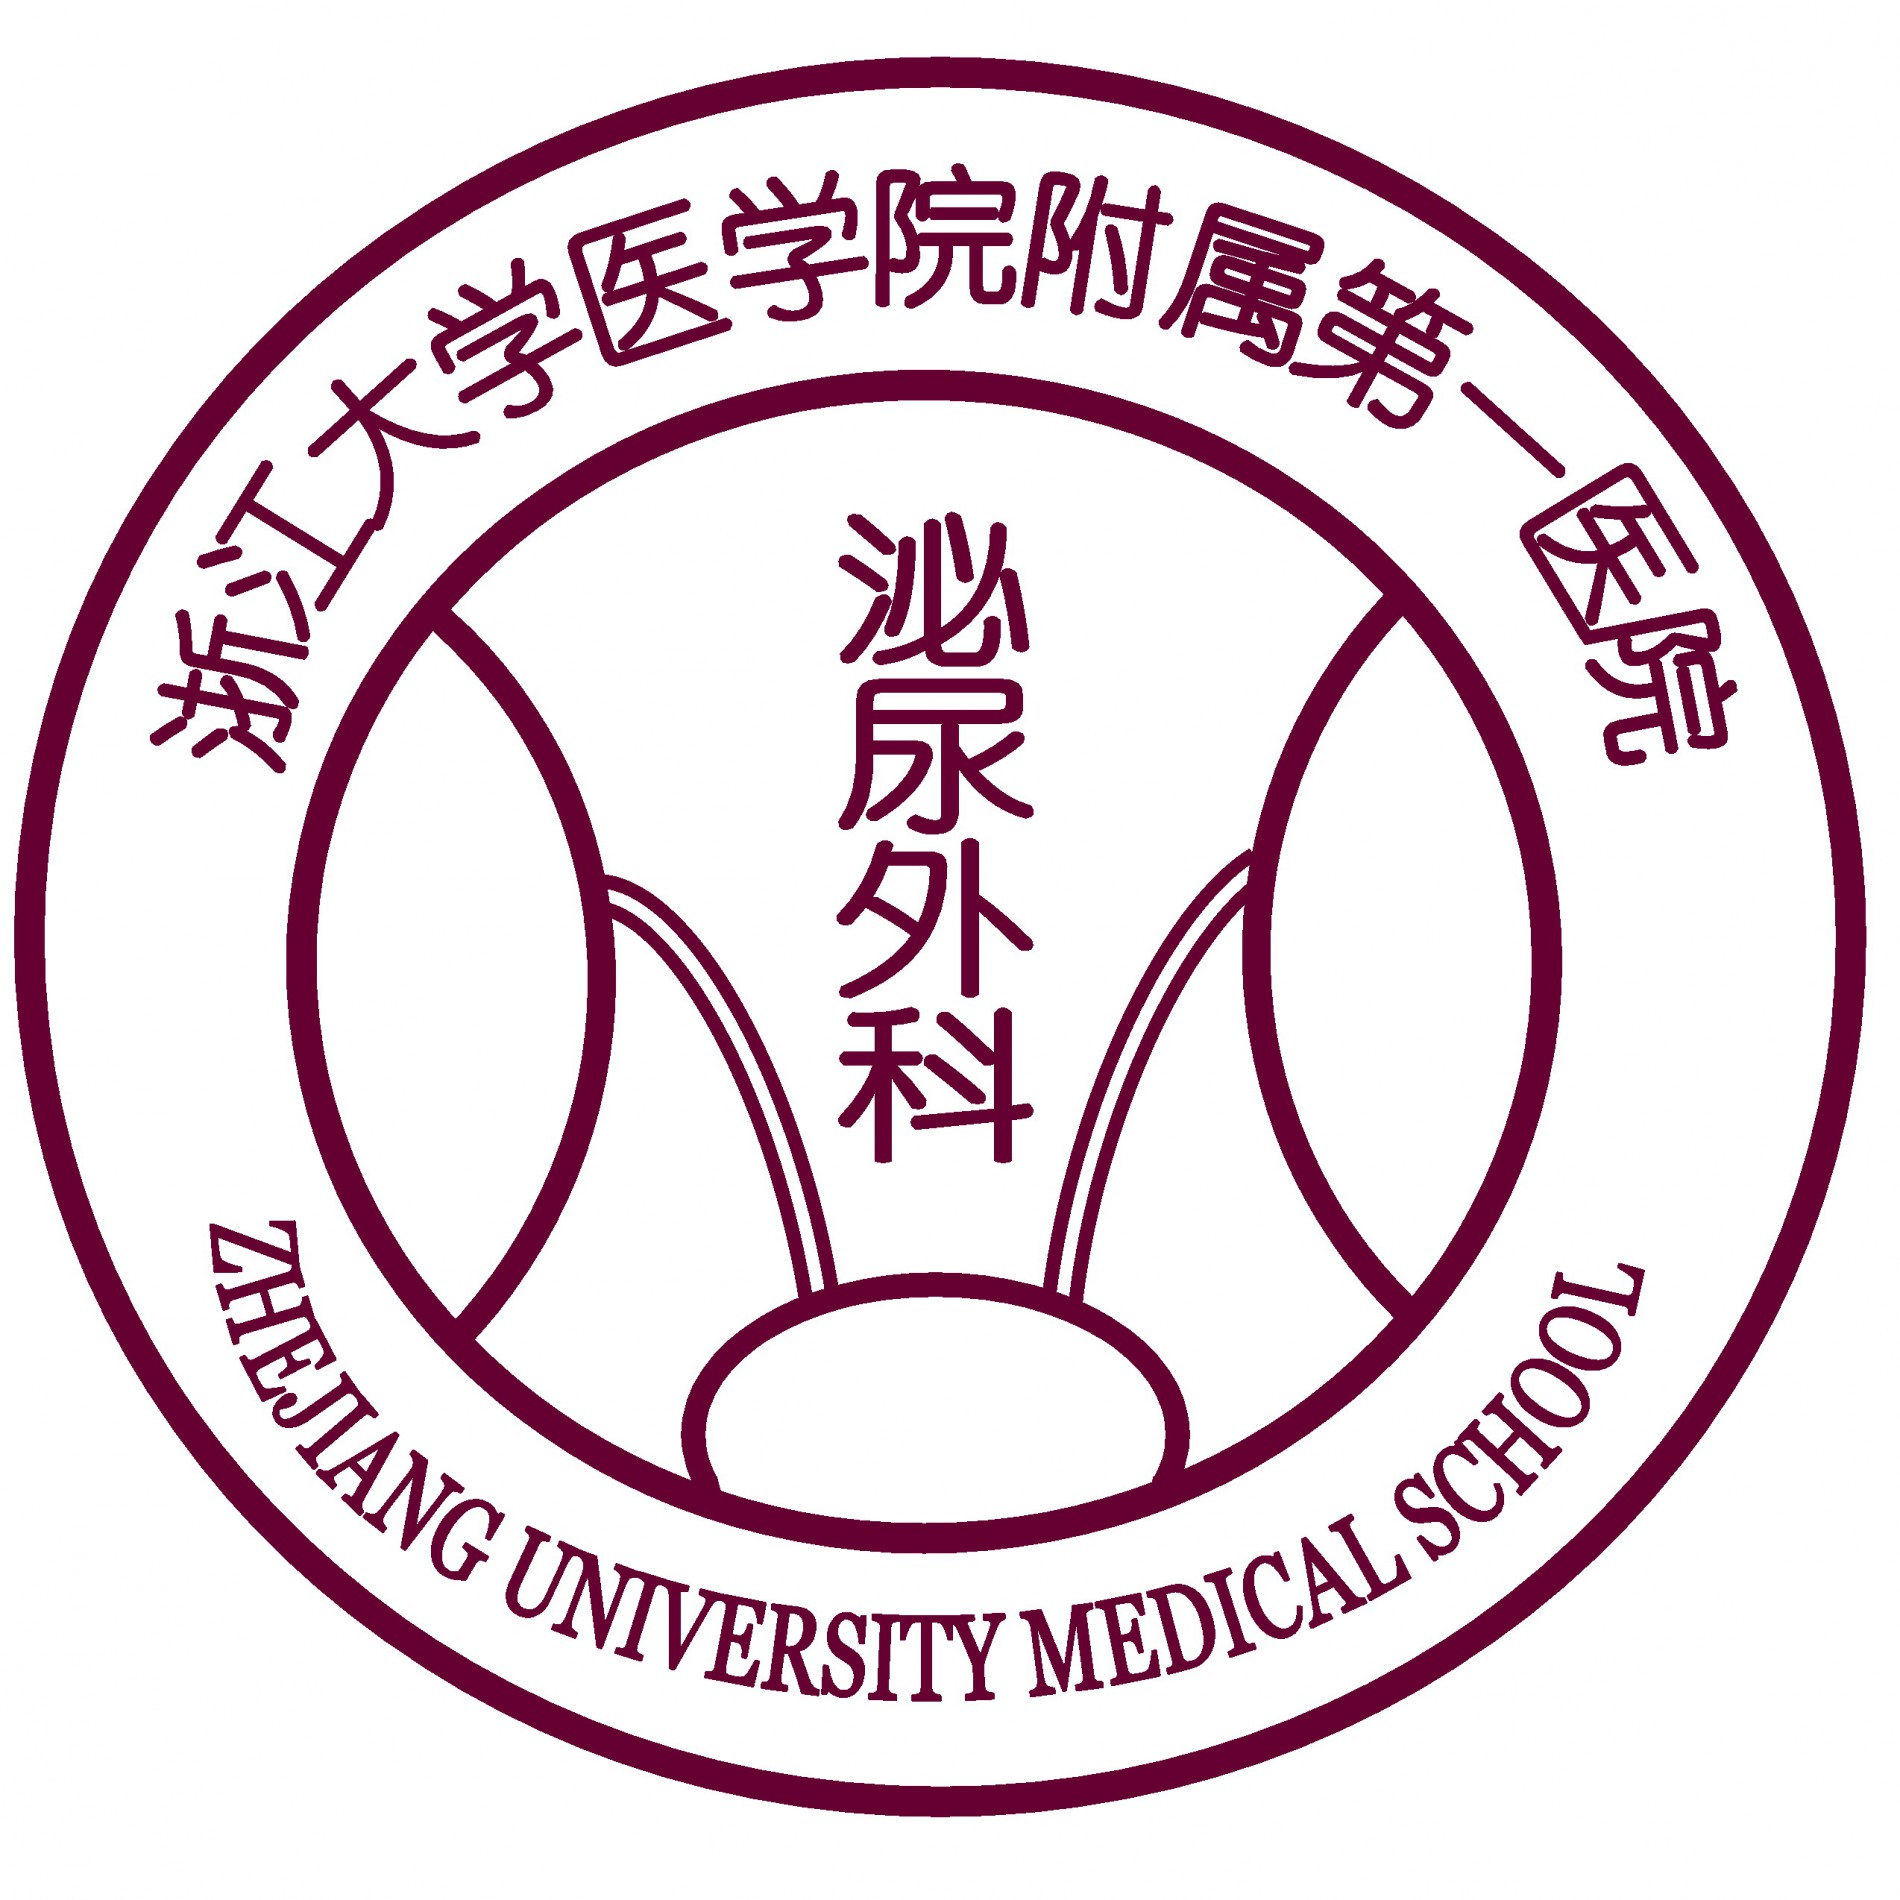 The First Affiliated Hospital of College of Medicine, Zhejian University